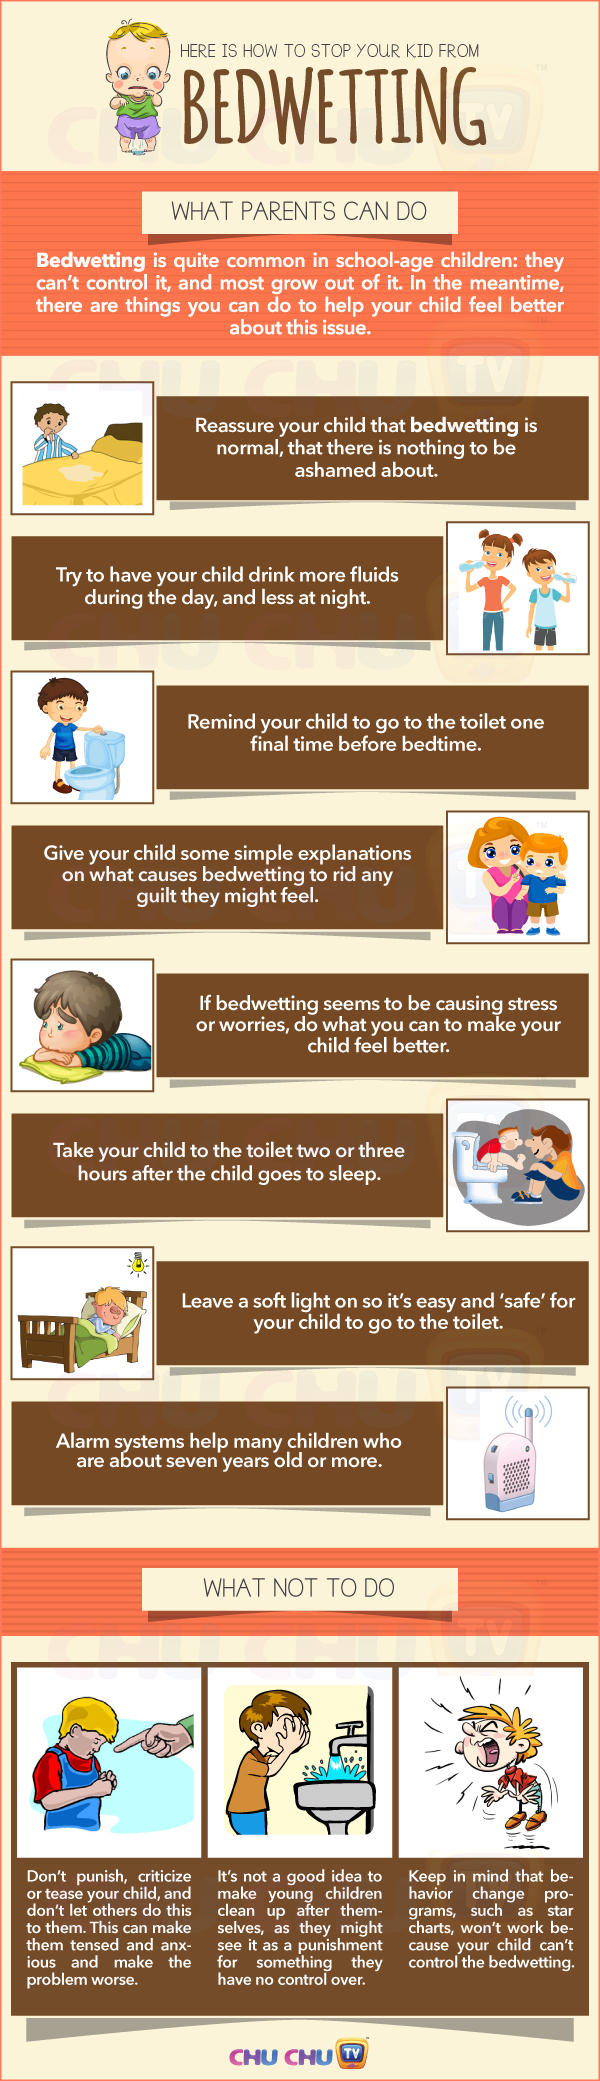 How to Stop Your Kid from Bedwetting